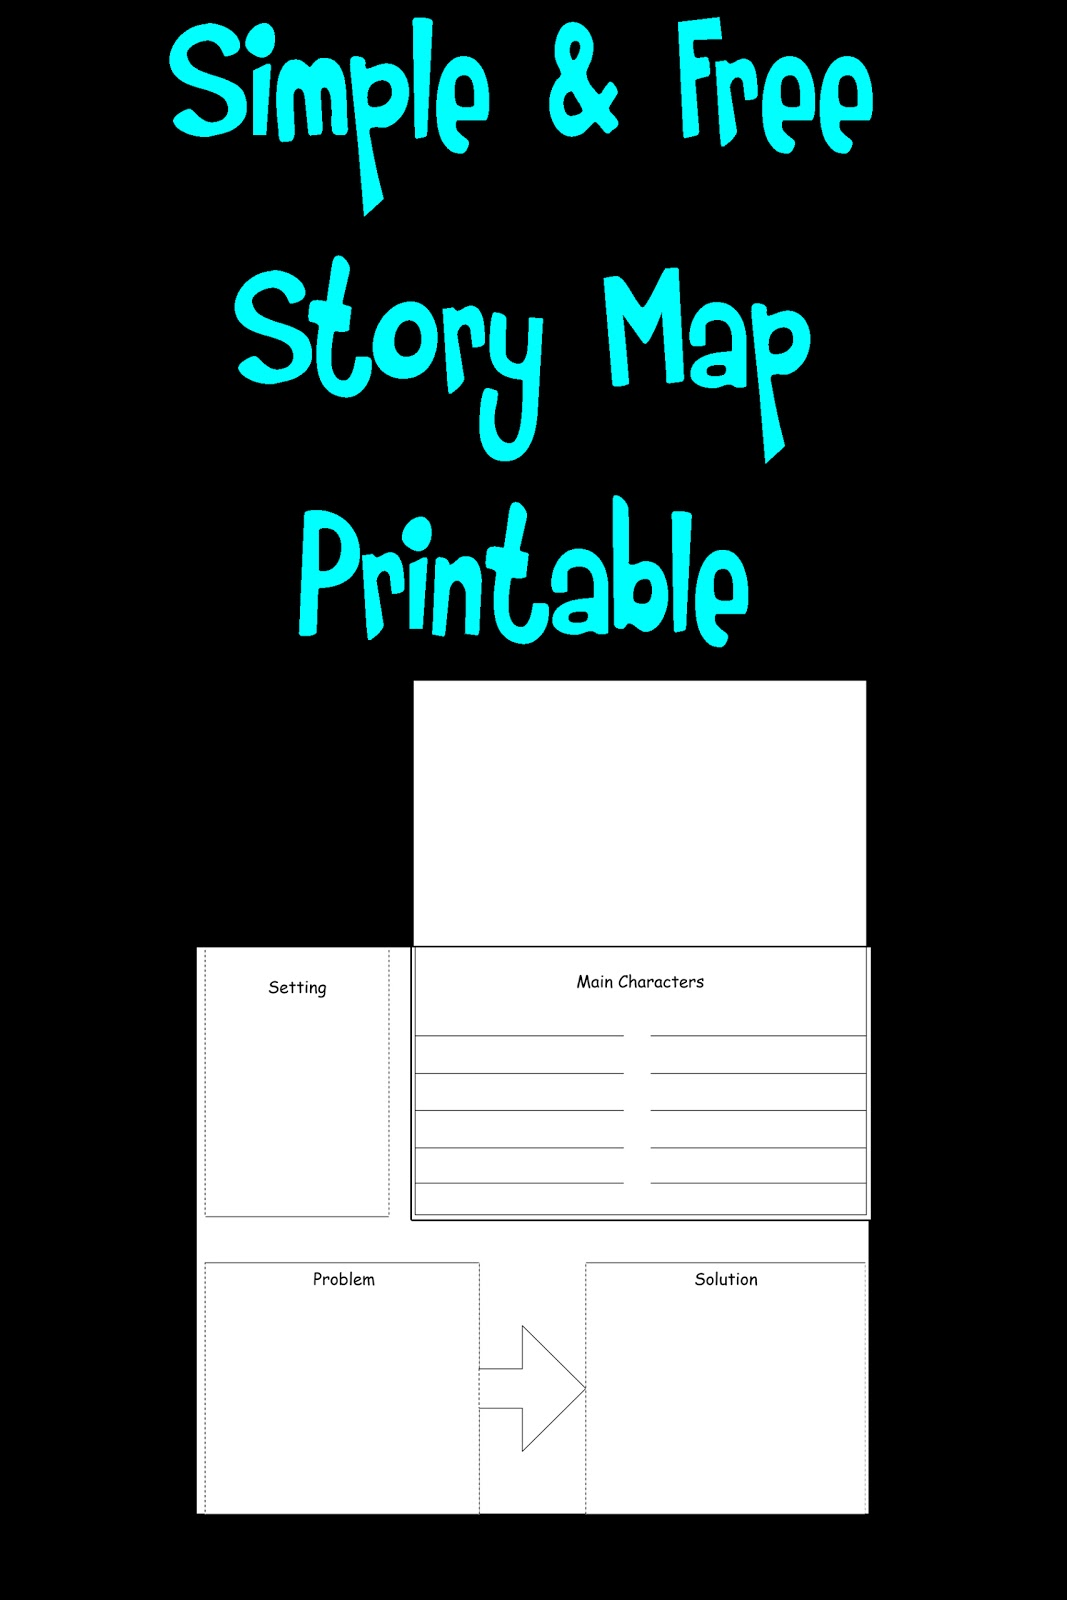 Simple Story Map Printable